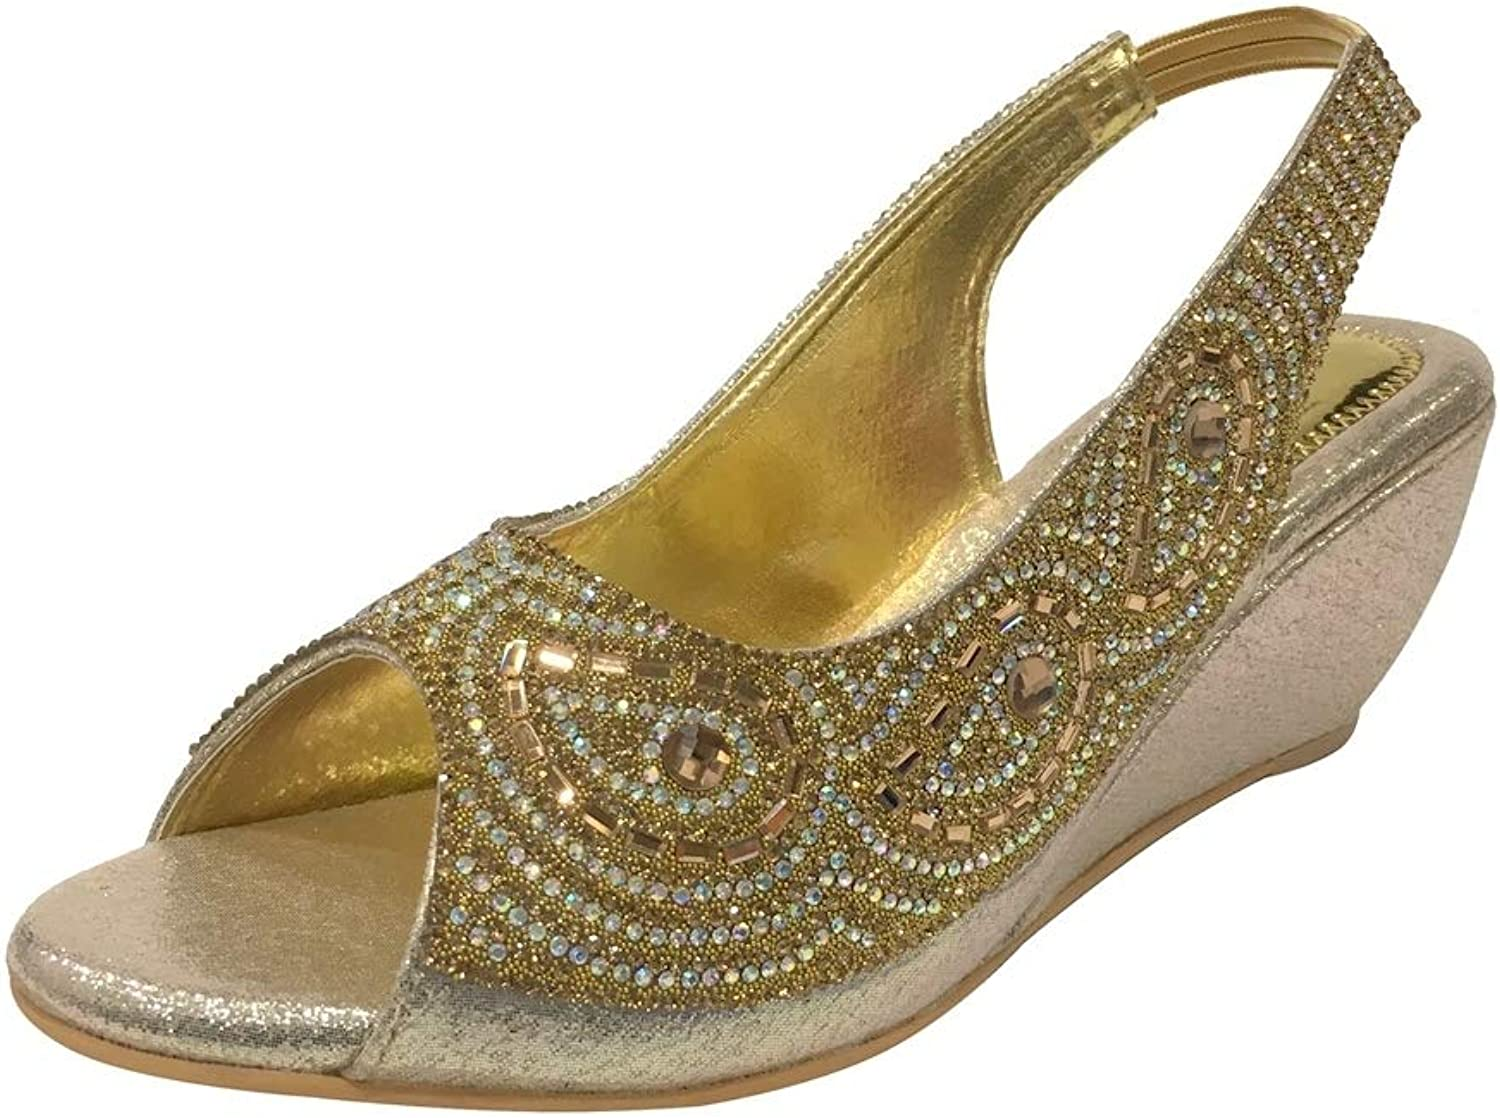 Step n Style Womens Wedge Heel Sandals Toe Post Ladies Diamante Sparkly Prom shoes